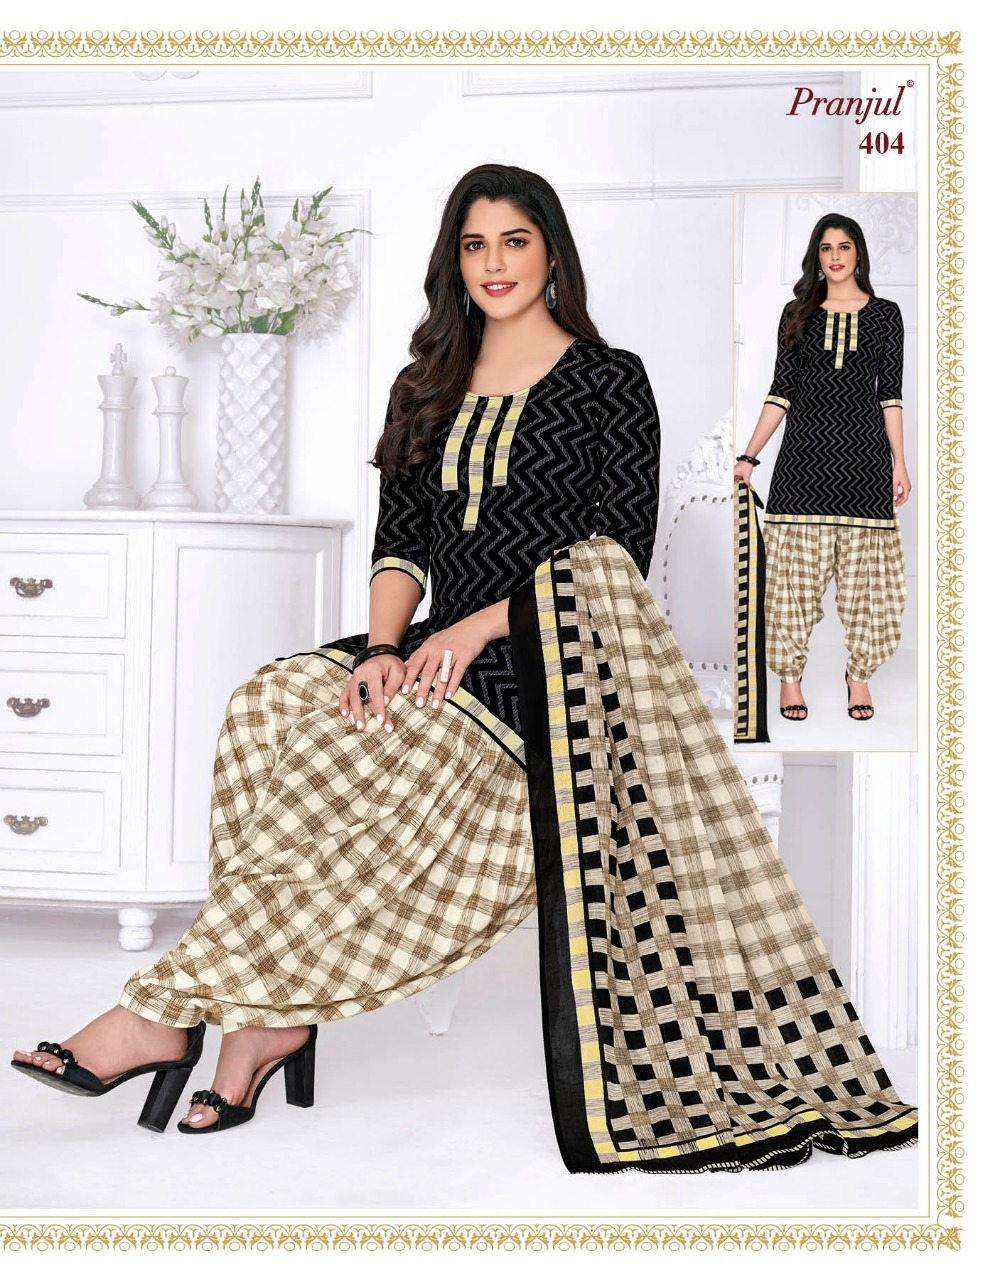 Pranjul Priyanka Vol 4 B Readymade Suit Wholesale Catalog 15 Pcs 8 - Pranjul Priyanka Vol 4 B Readymade Suit Wholesale Catalog 15 Pcs